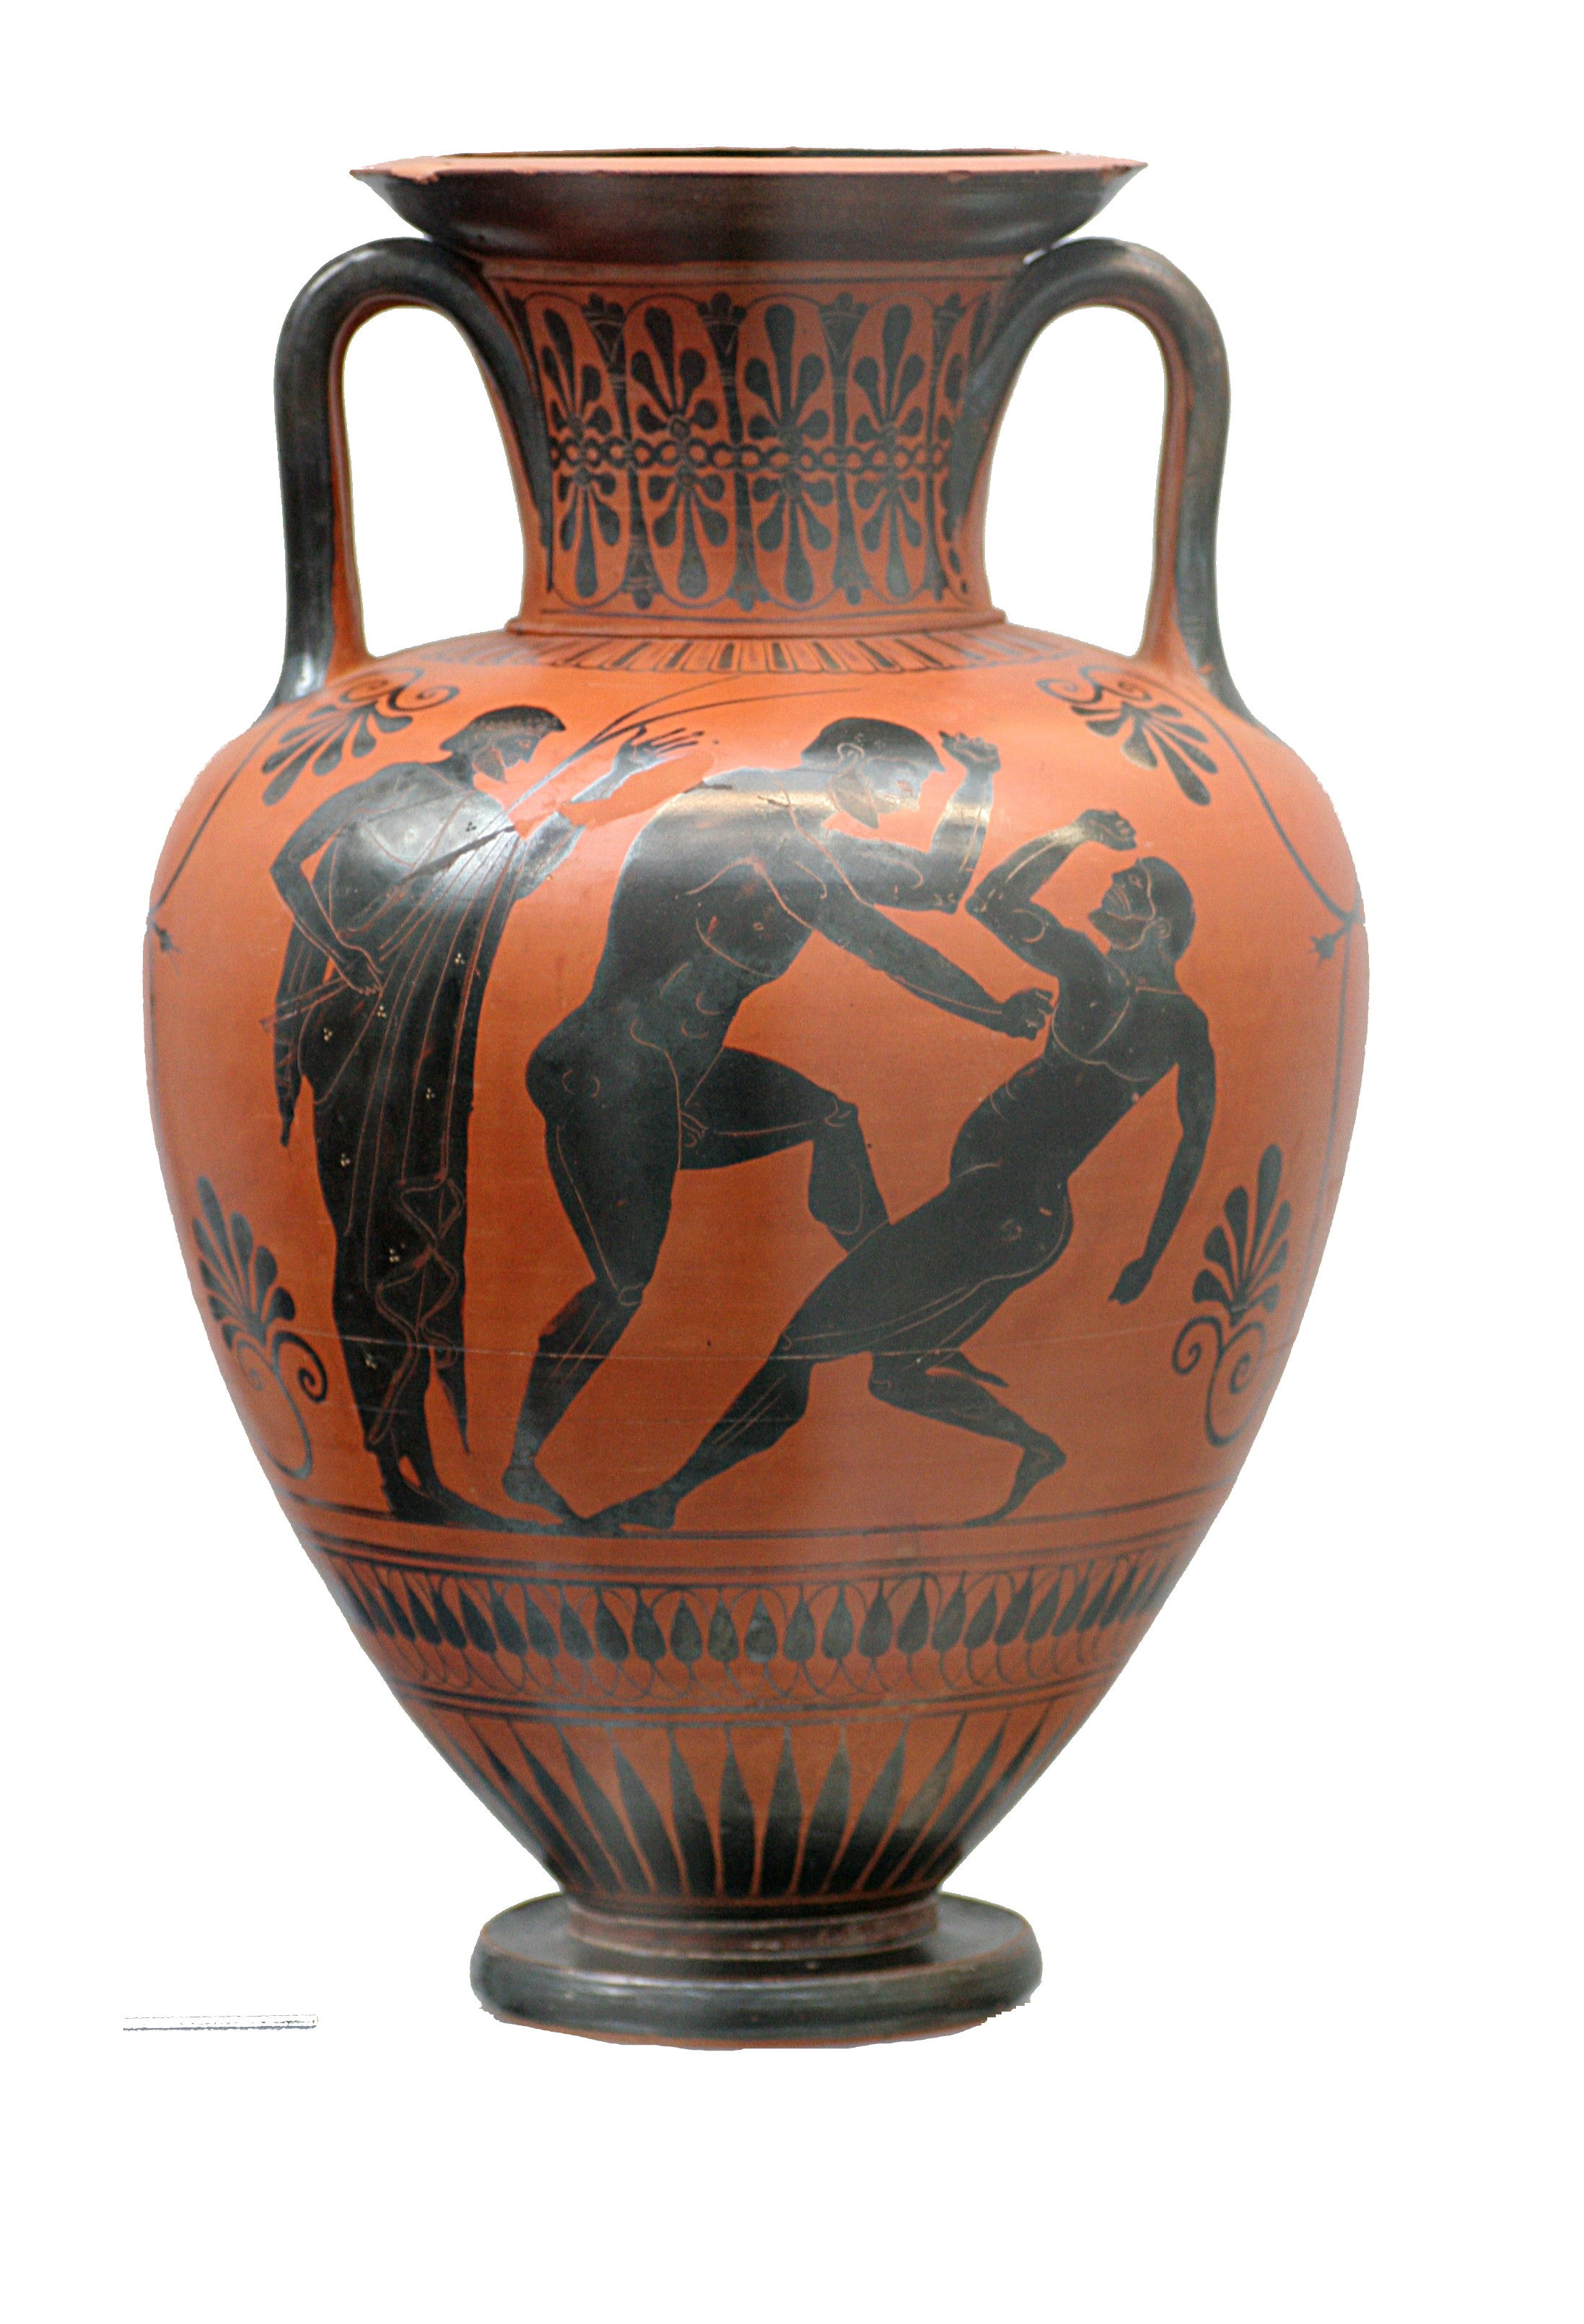 Typology of Greek vase shapes